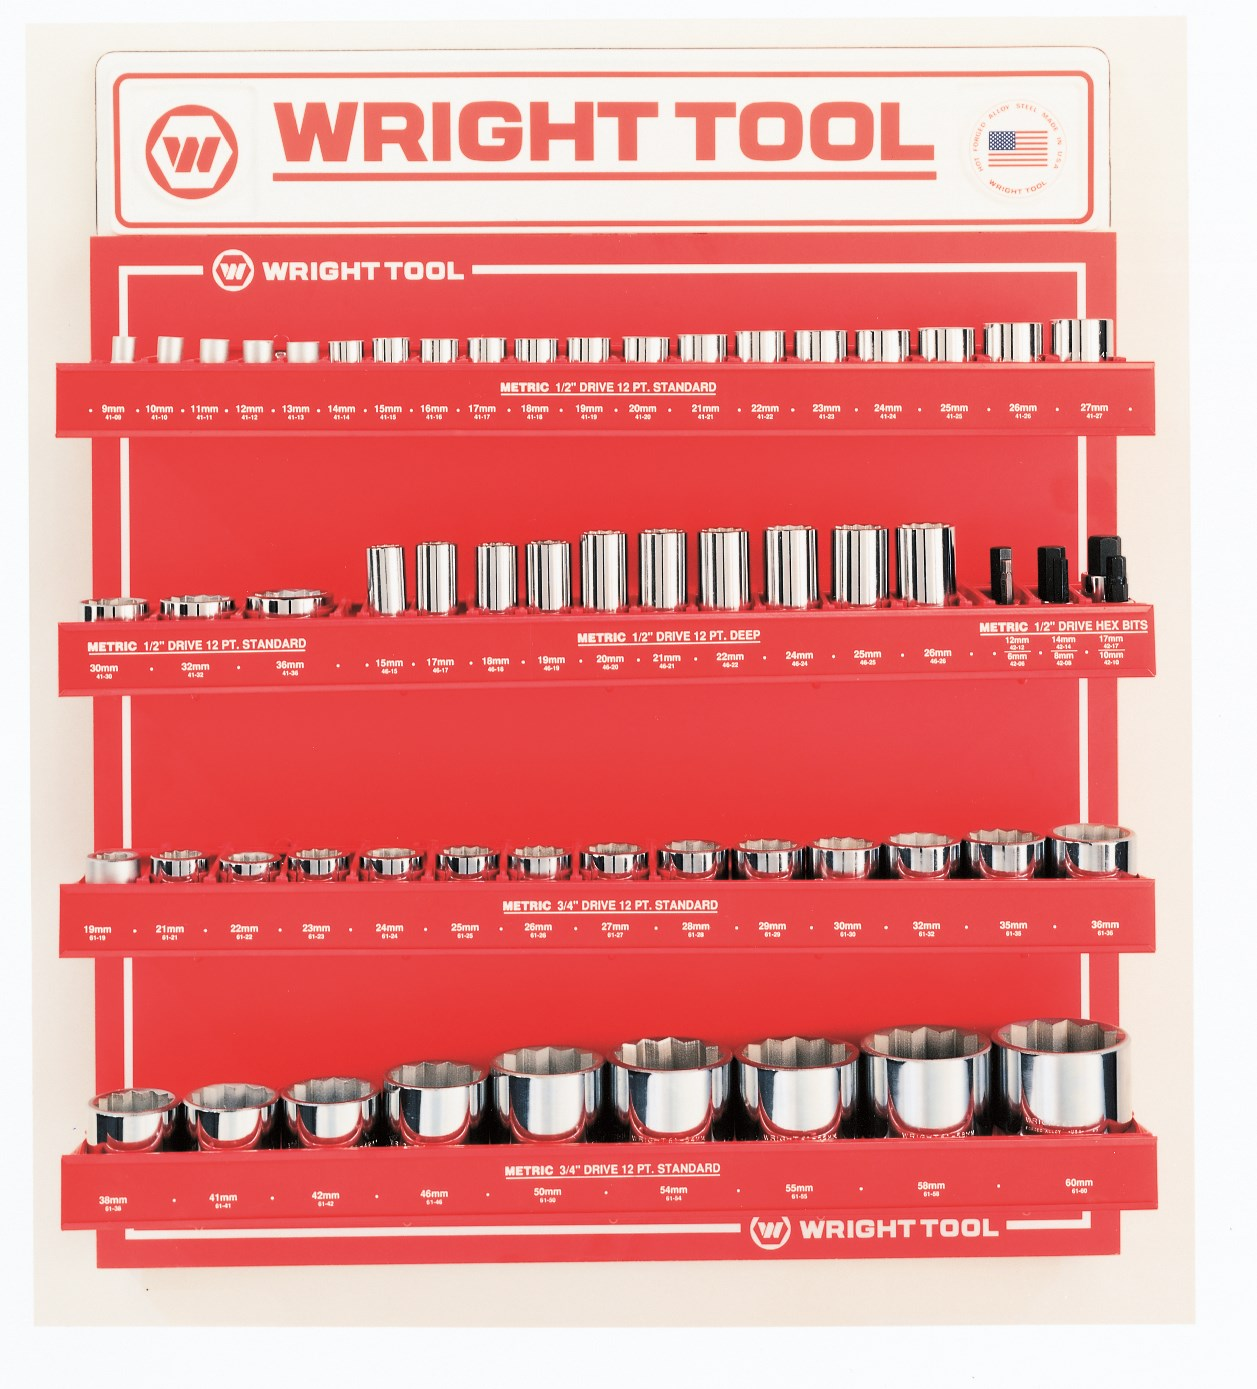 Wright Tool D958 61 Piece Metric 1/2-inch & 3/4-inch Drive 12-Point Sockets